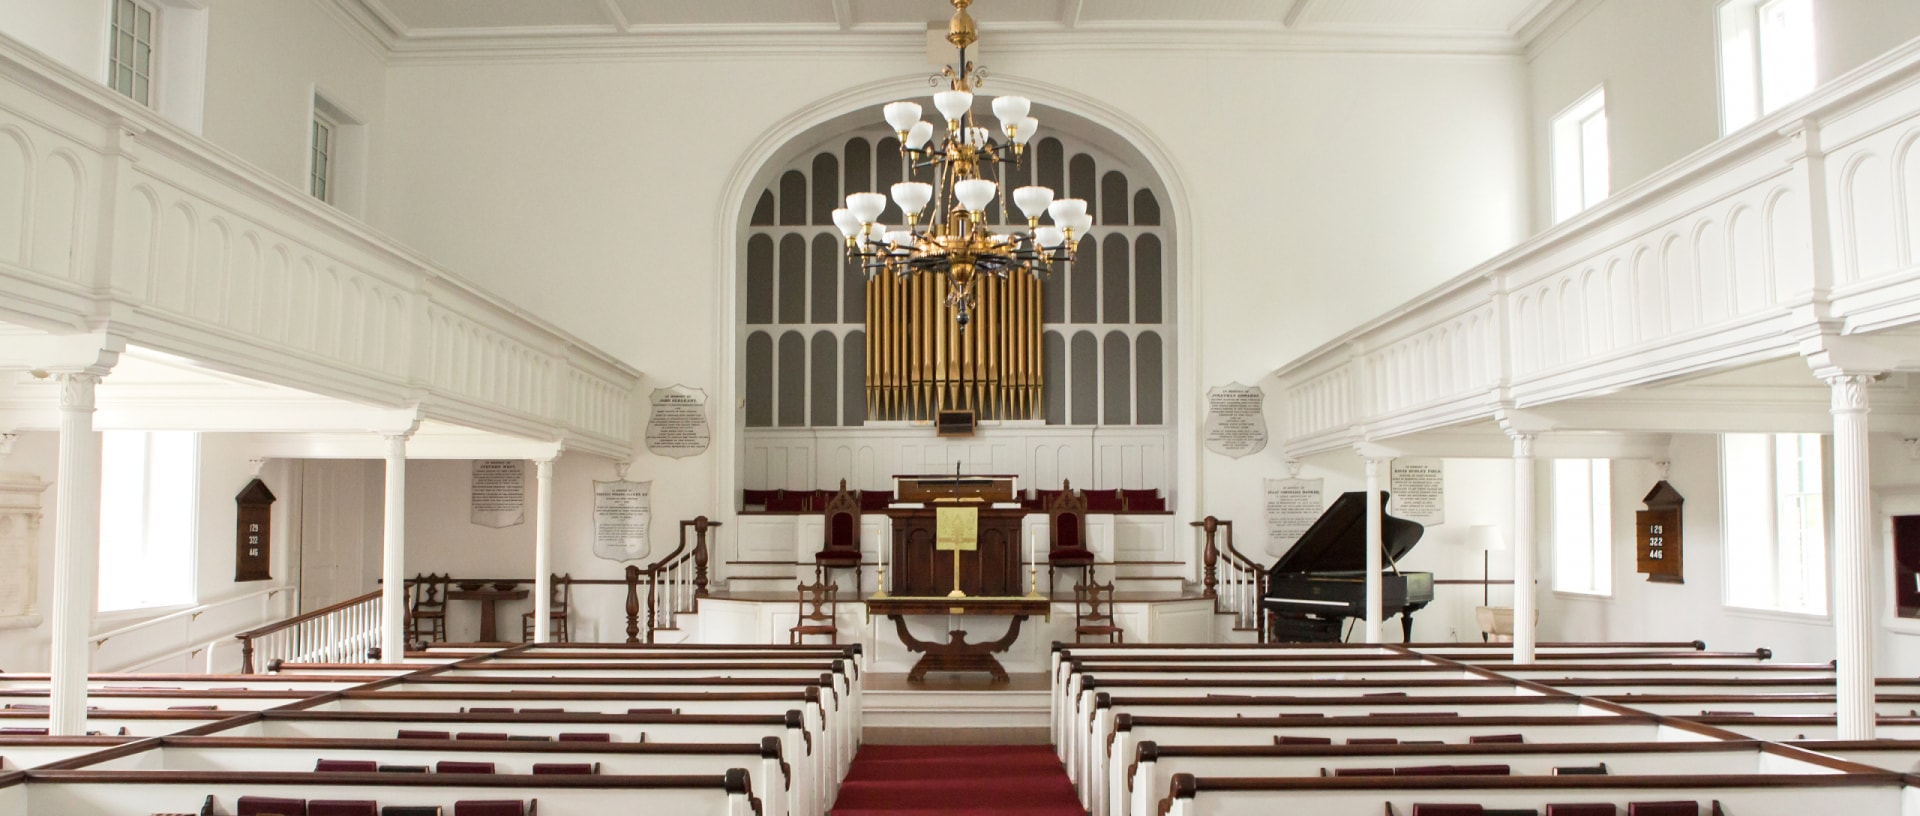 The historic sanctuary of the Stockbridge Congregational Church with white interior and red upholstry.